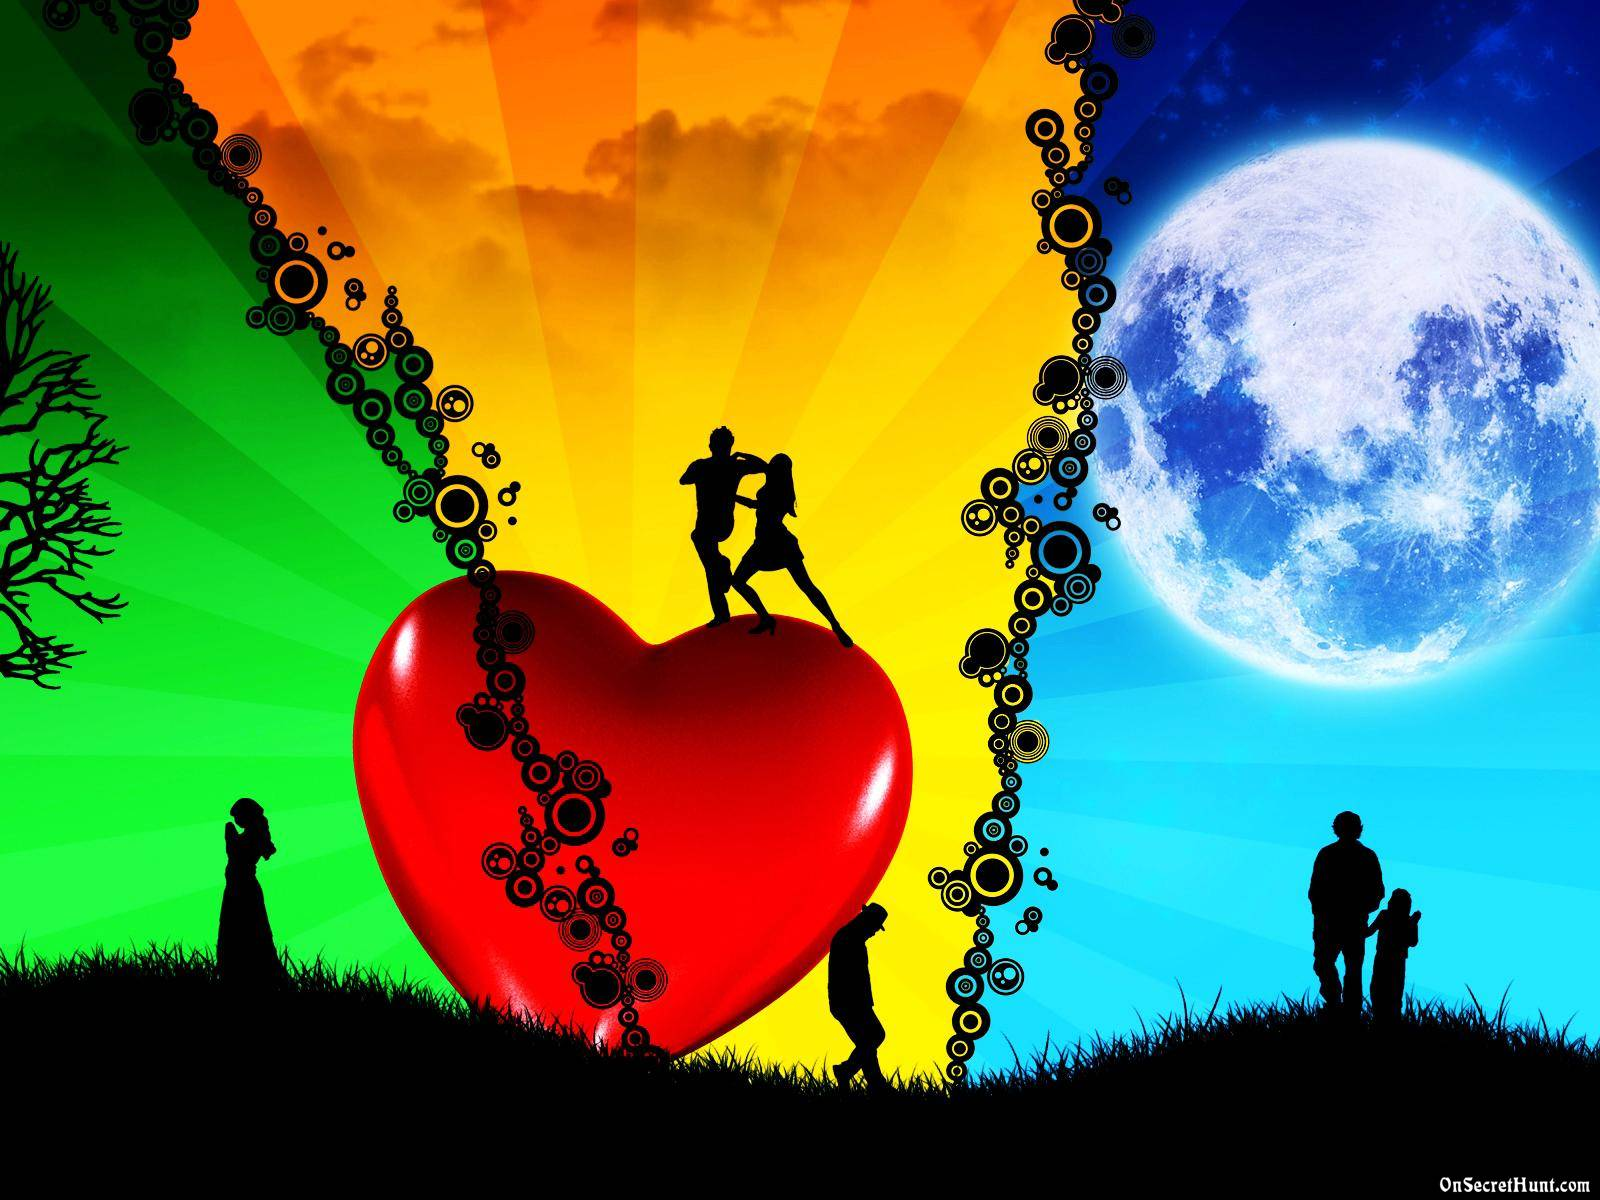 Love couple Full Hd Desktop Wallpaper : Love Wallpapers 3D - Wallpaper cave